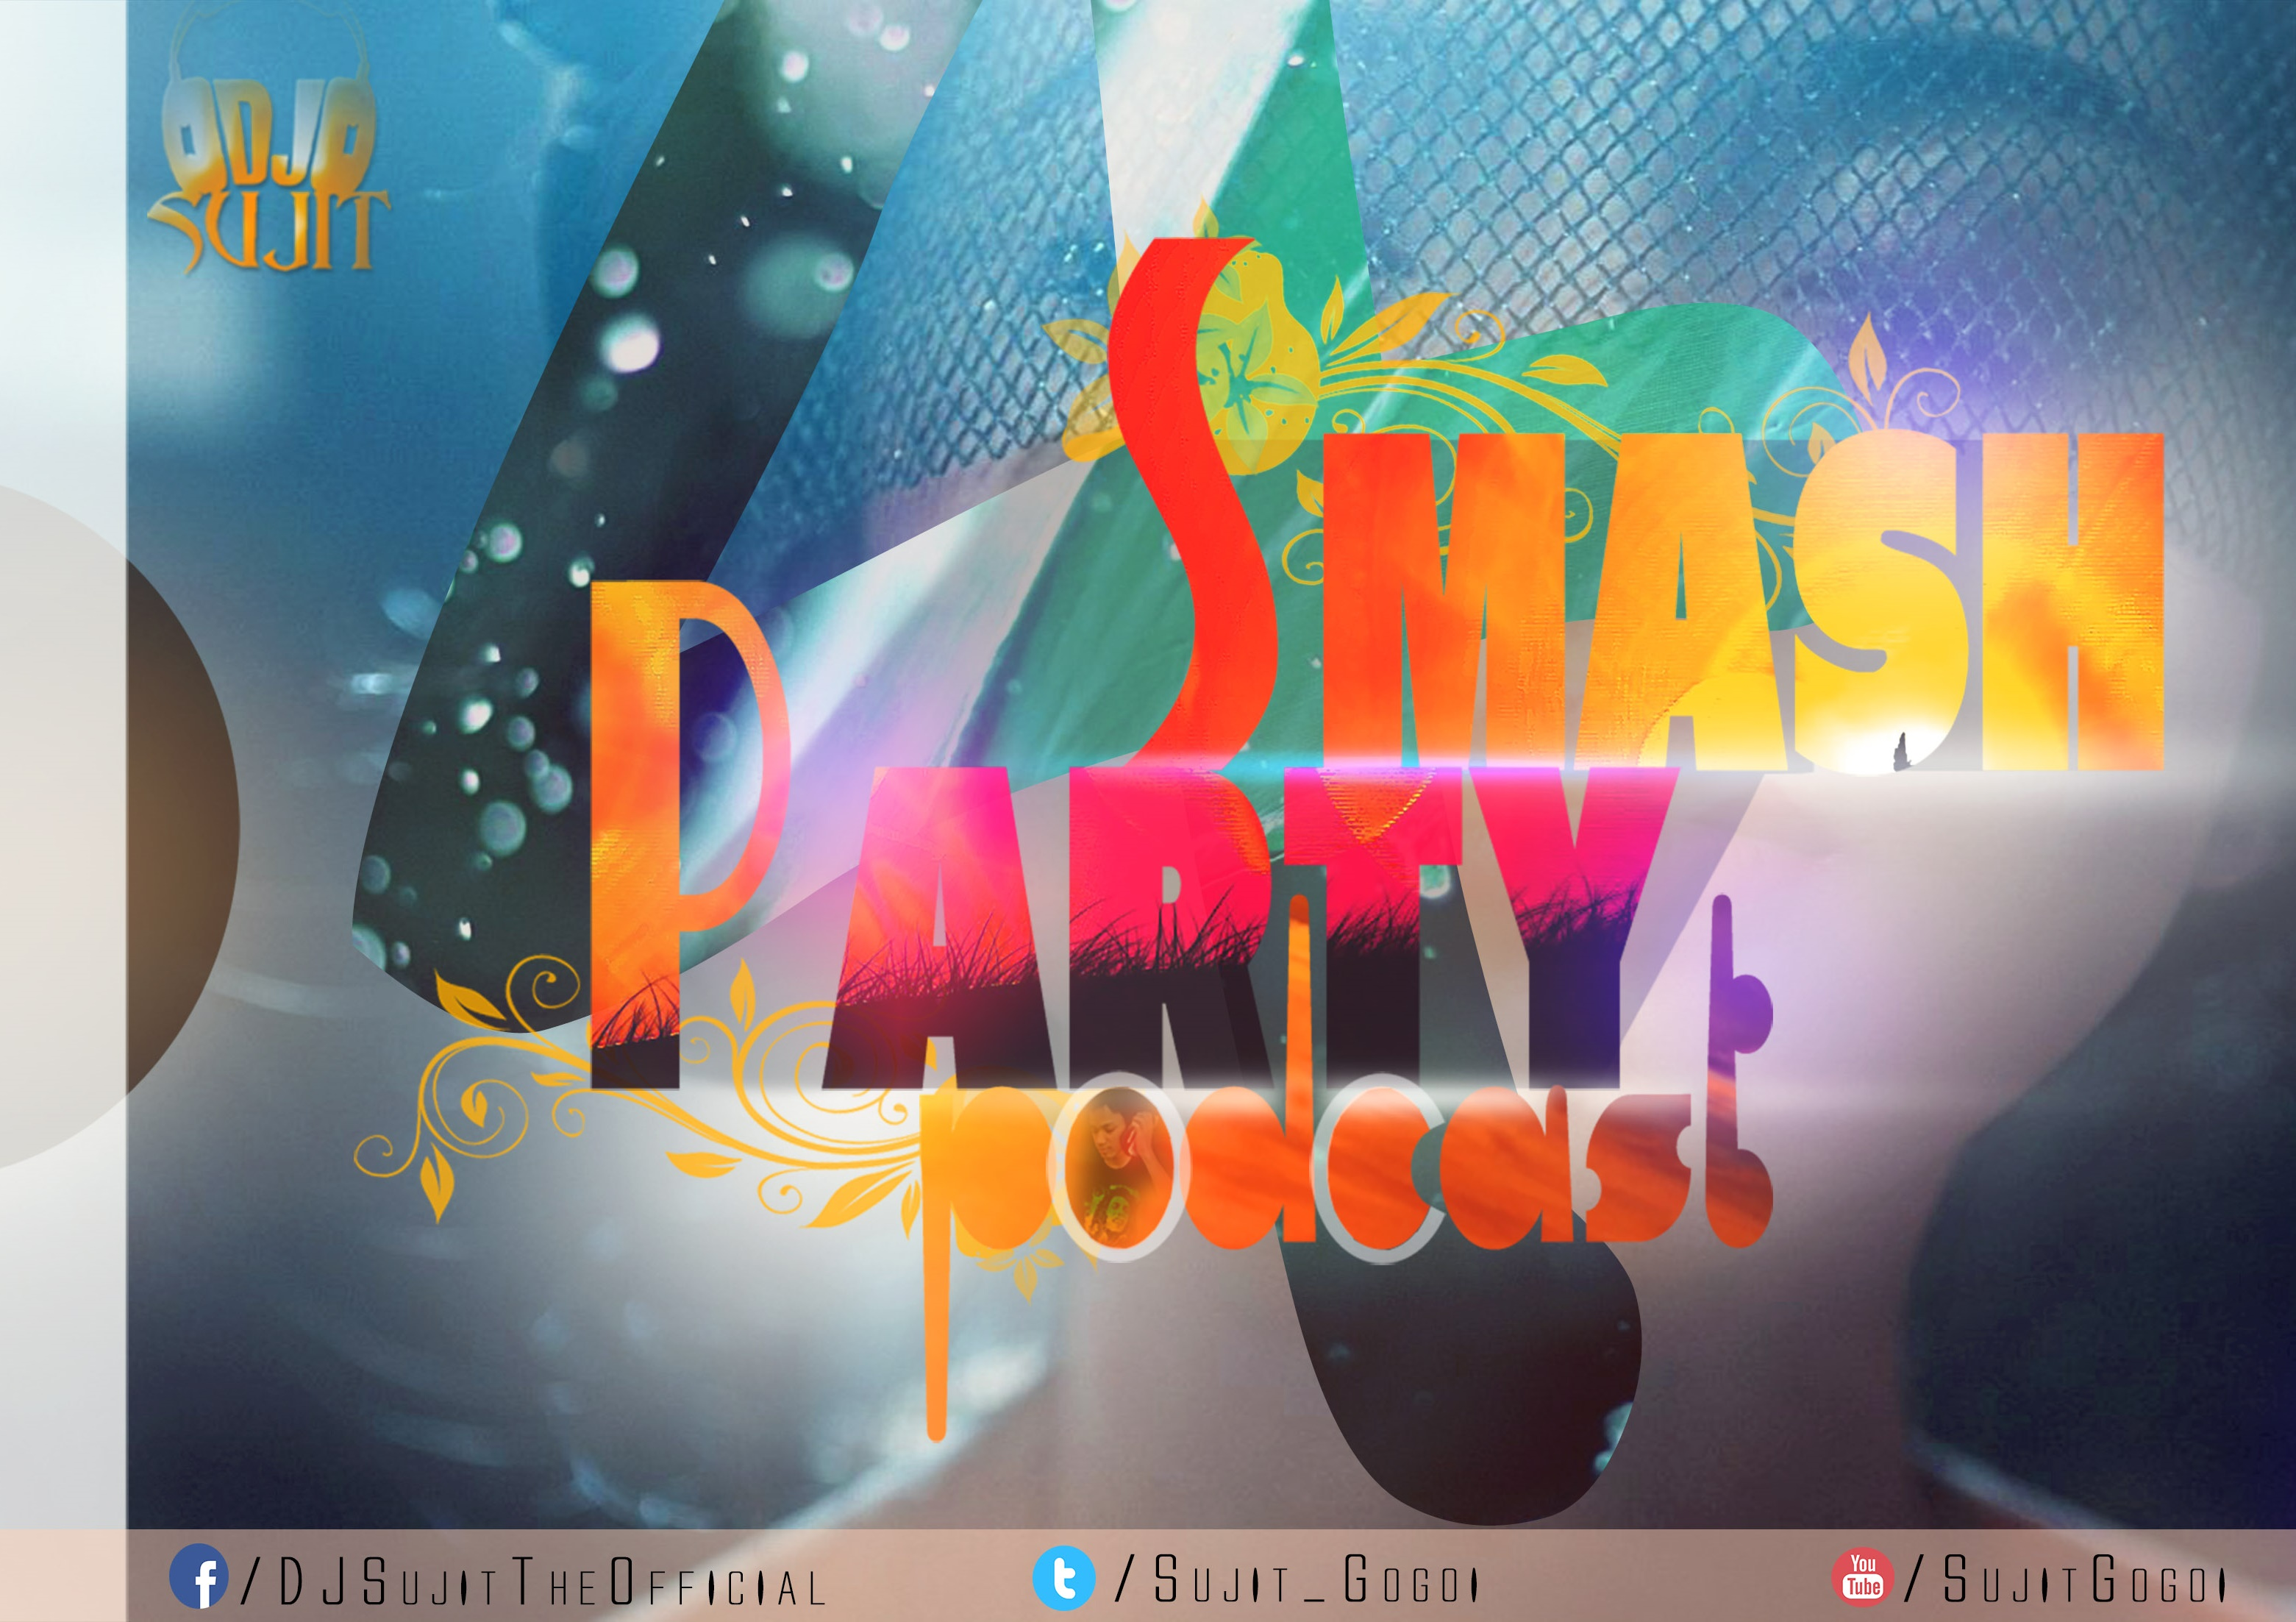 Smash Party Podcast 4 (NYE 2K17 Special Nonstop Assamese Dance Music